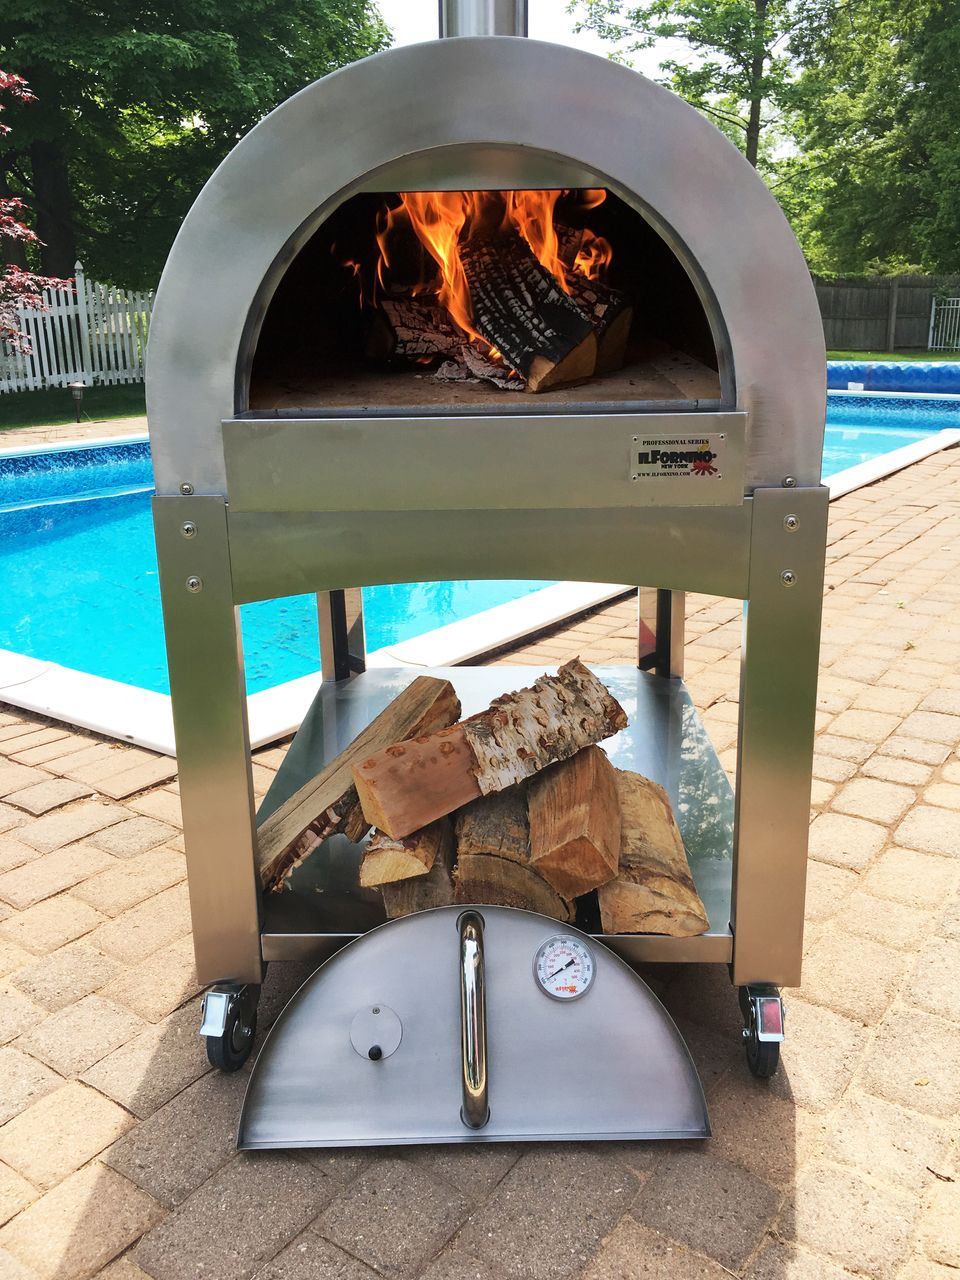 Ilfornino Professional Series Wood Burning Pizza Oven One Flat